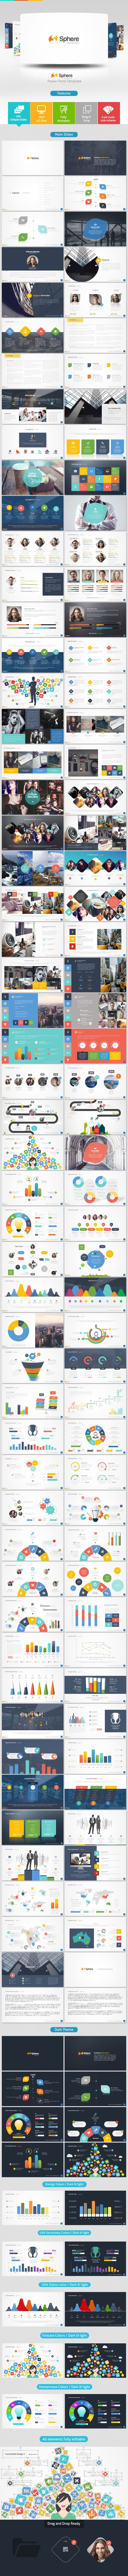 Sphere Multipurpose Power Point Template (PowerPoint Templates)